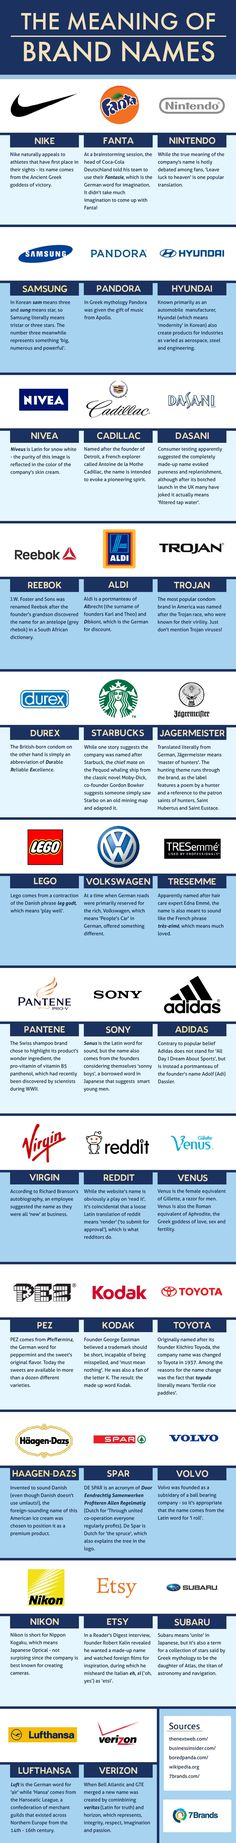 the_meaning_of_brand_names